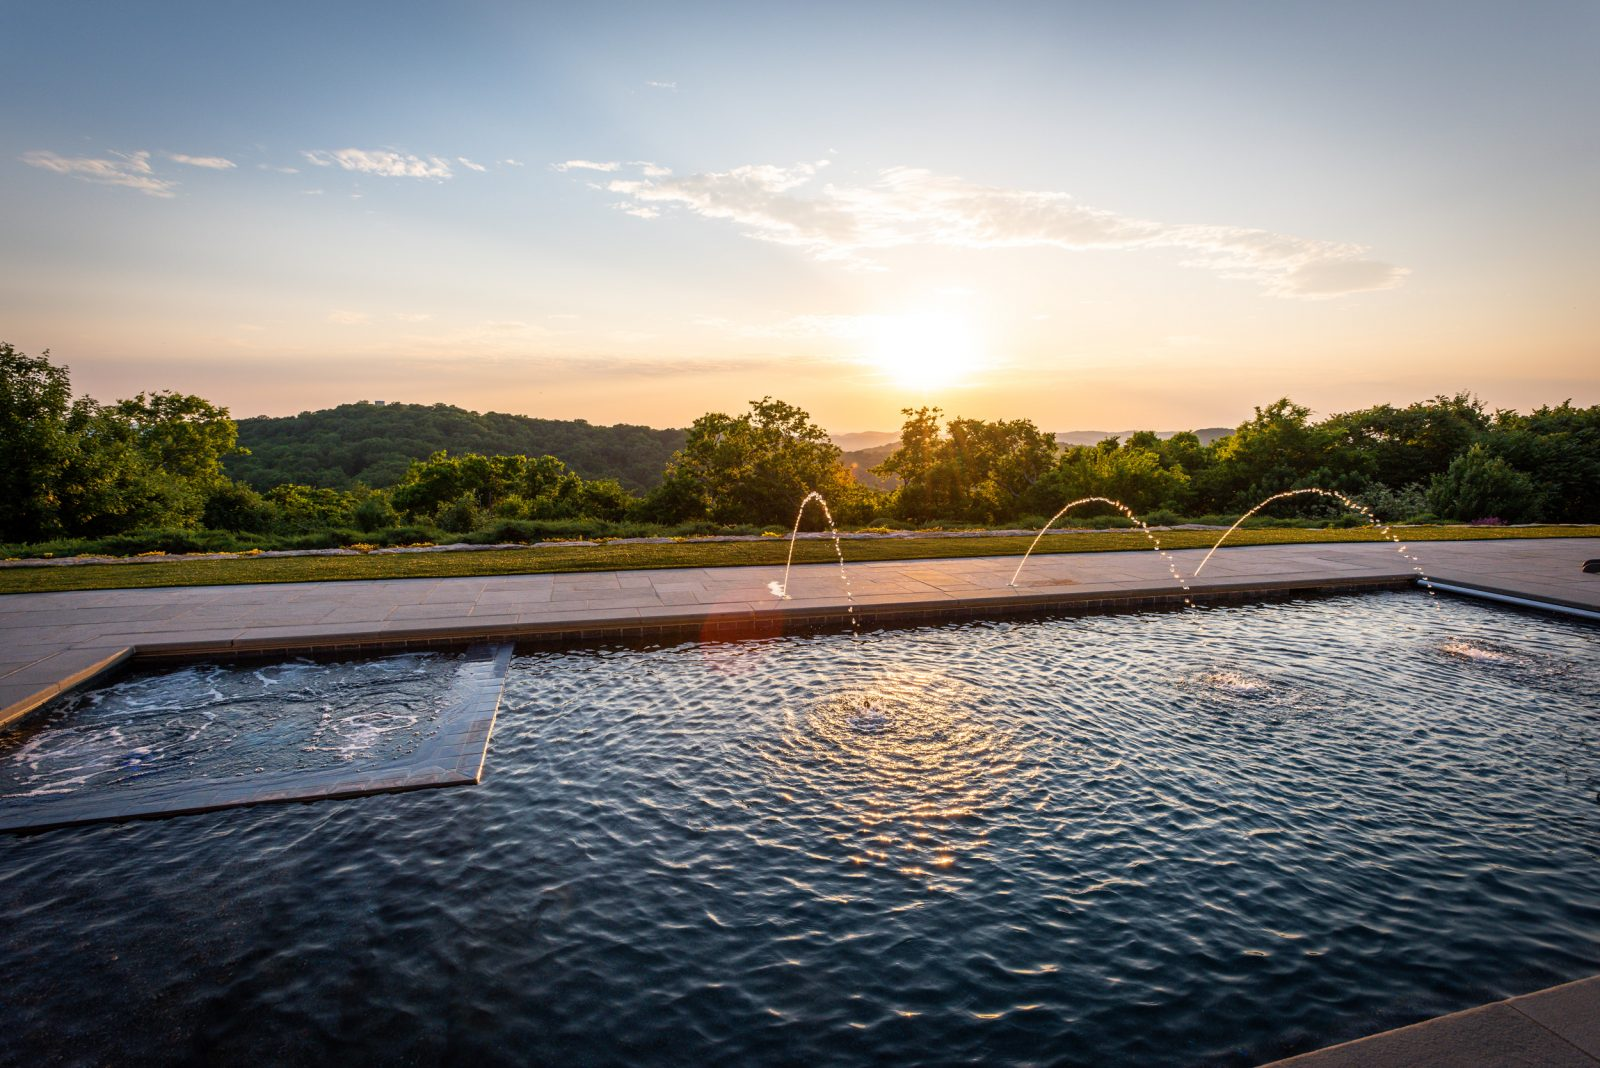 Pool at sunset in Franklin, TN overlooking the hills